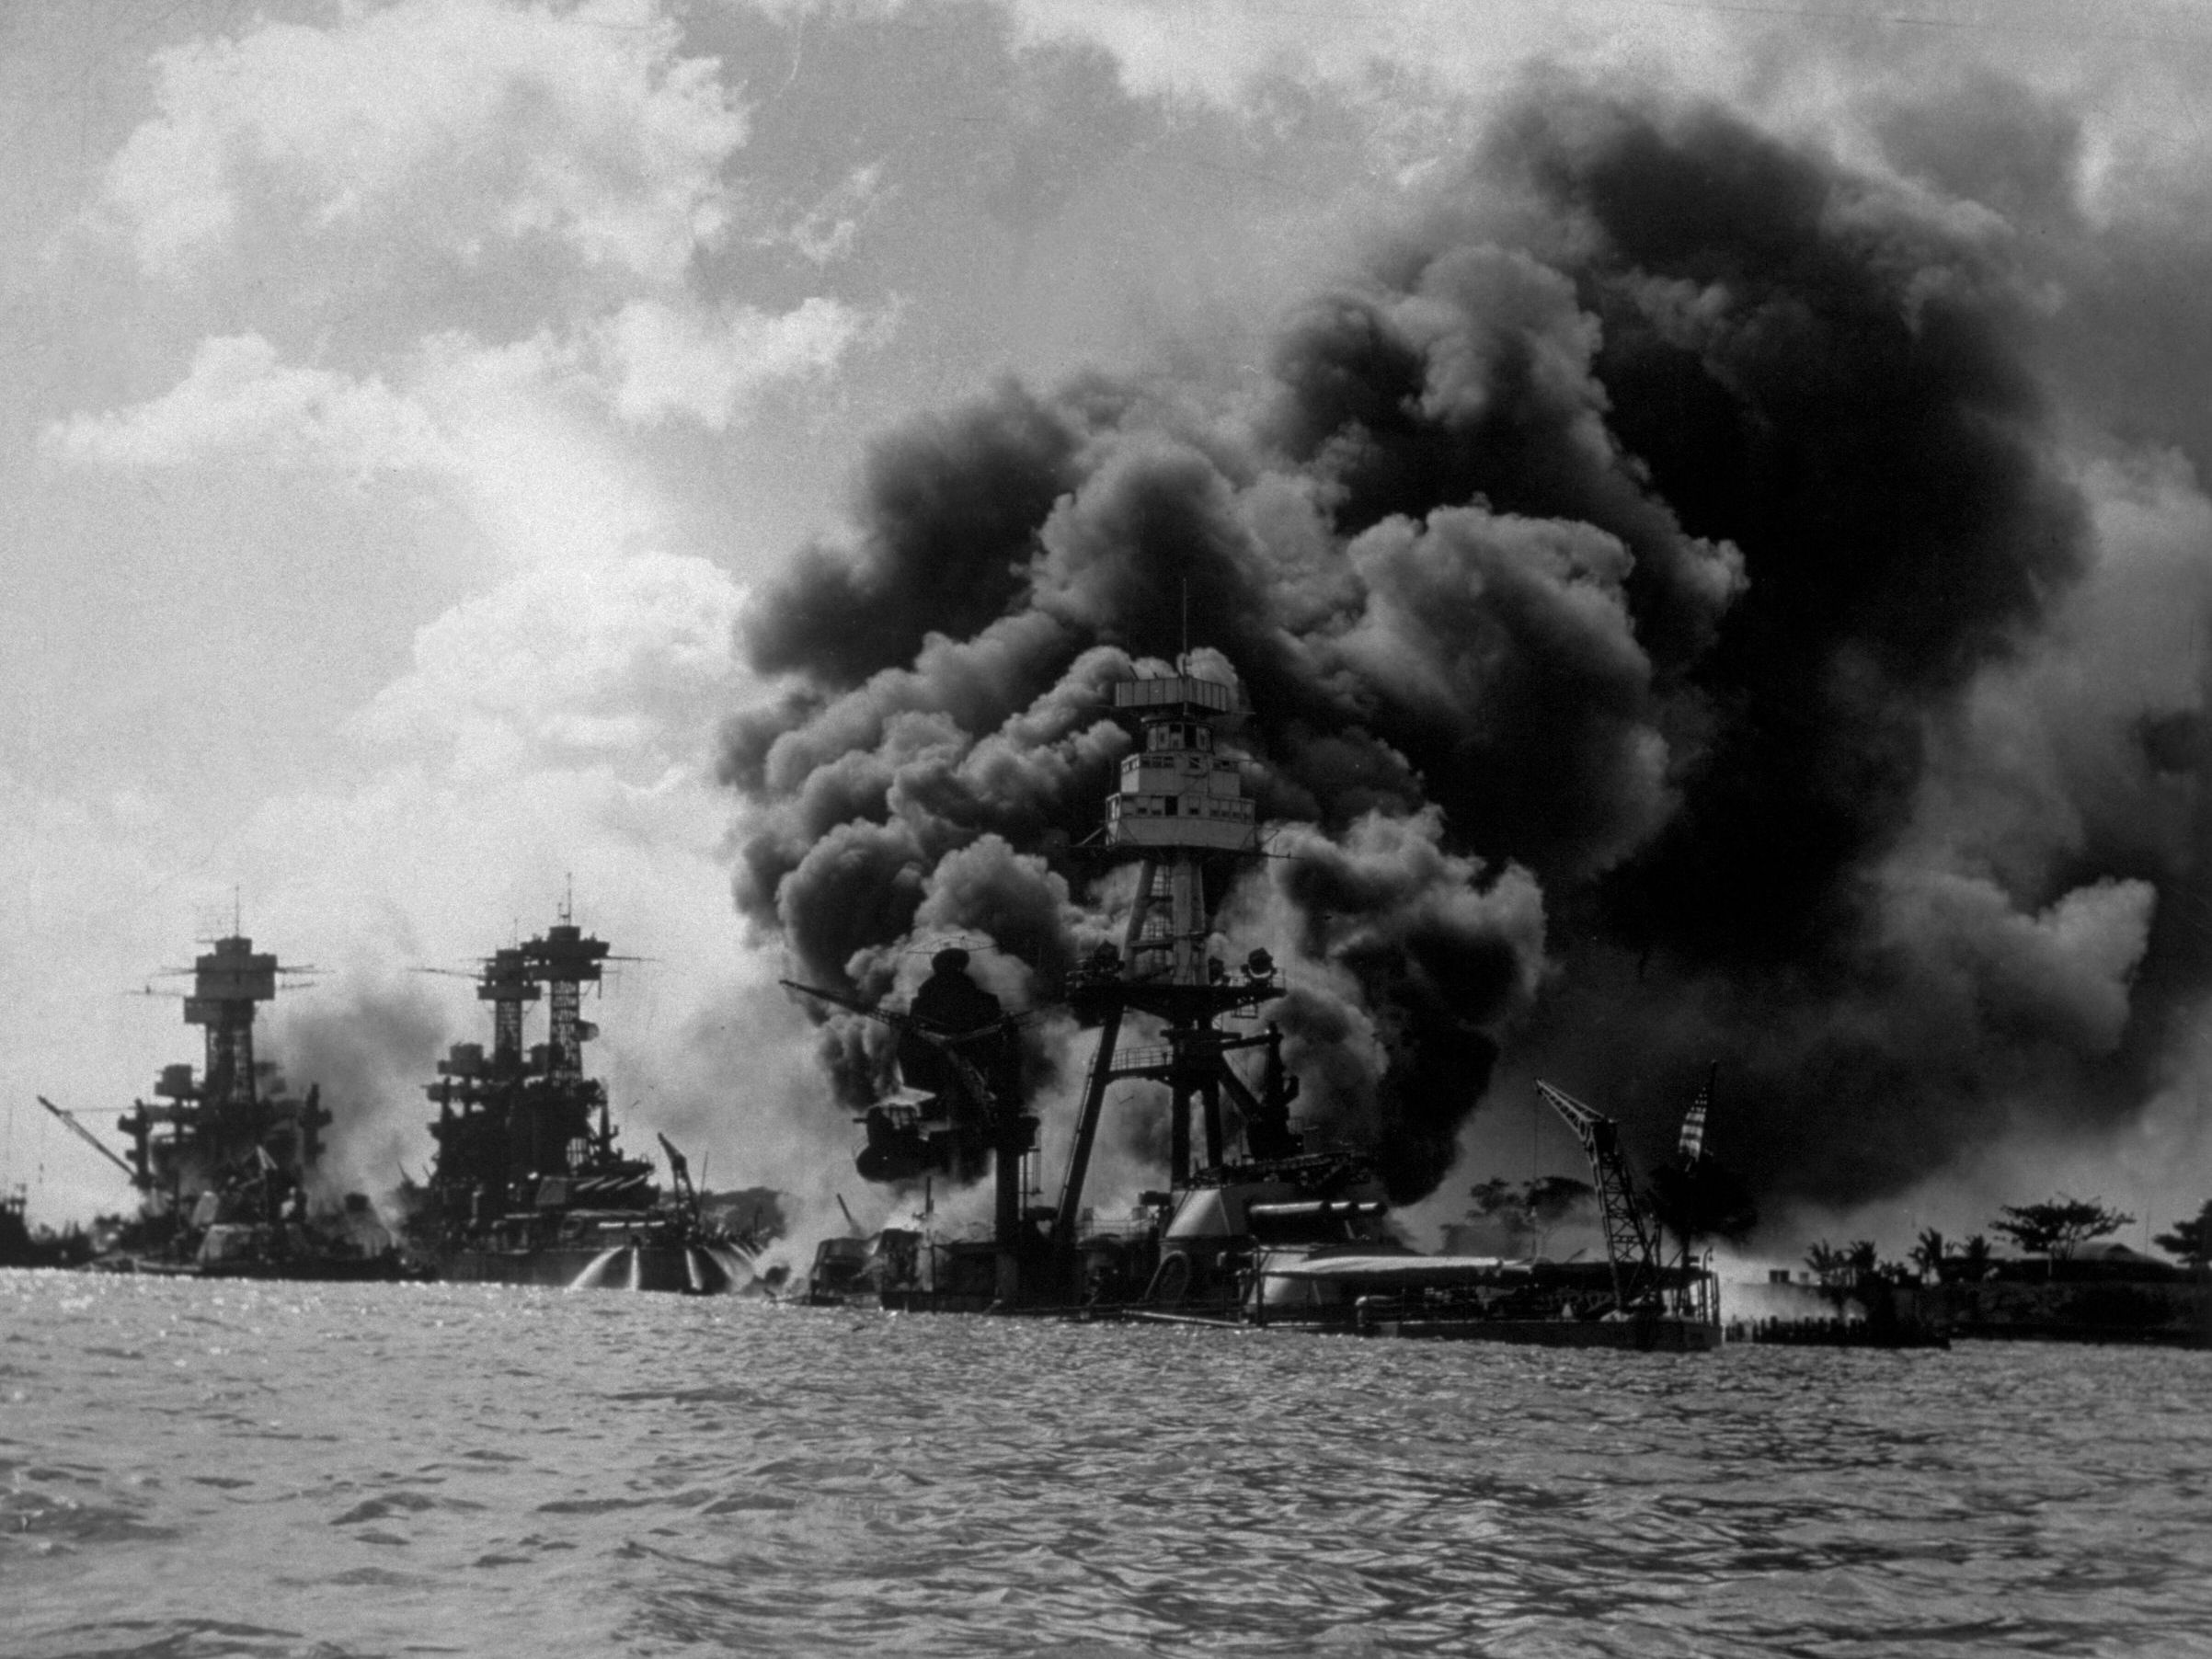 Facts About the Japanese Attack on Pearl Harbor